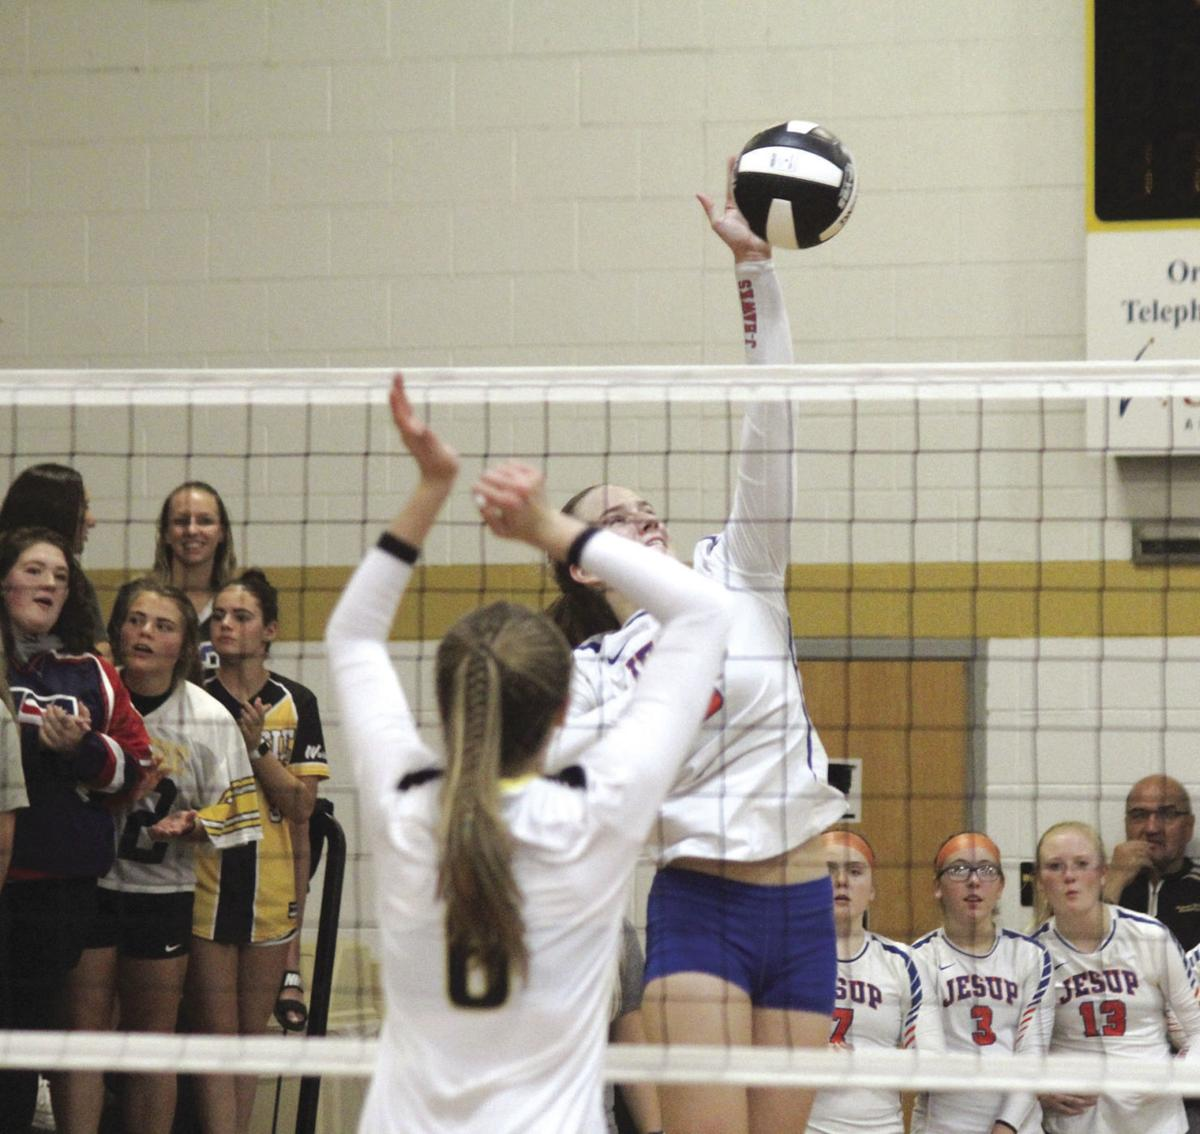 Wapsie Valley defeats Jesup in conference match